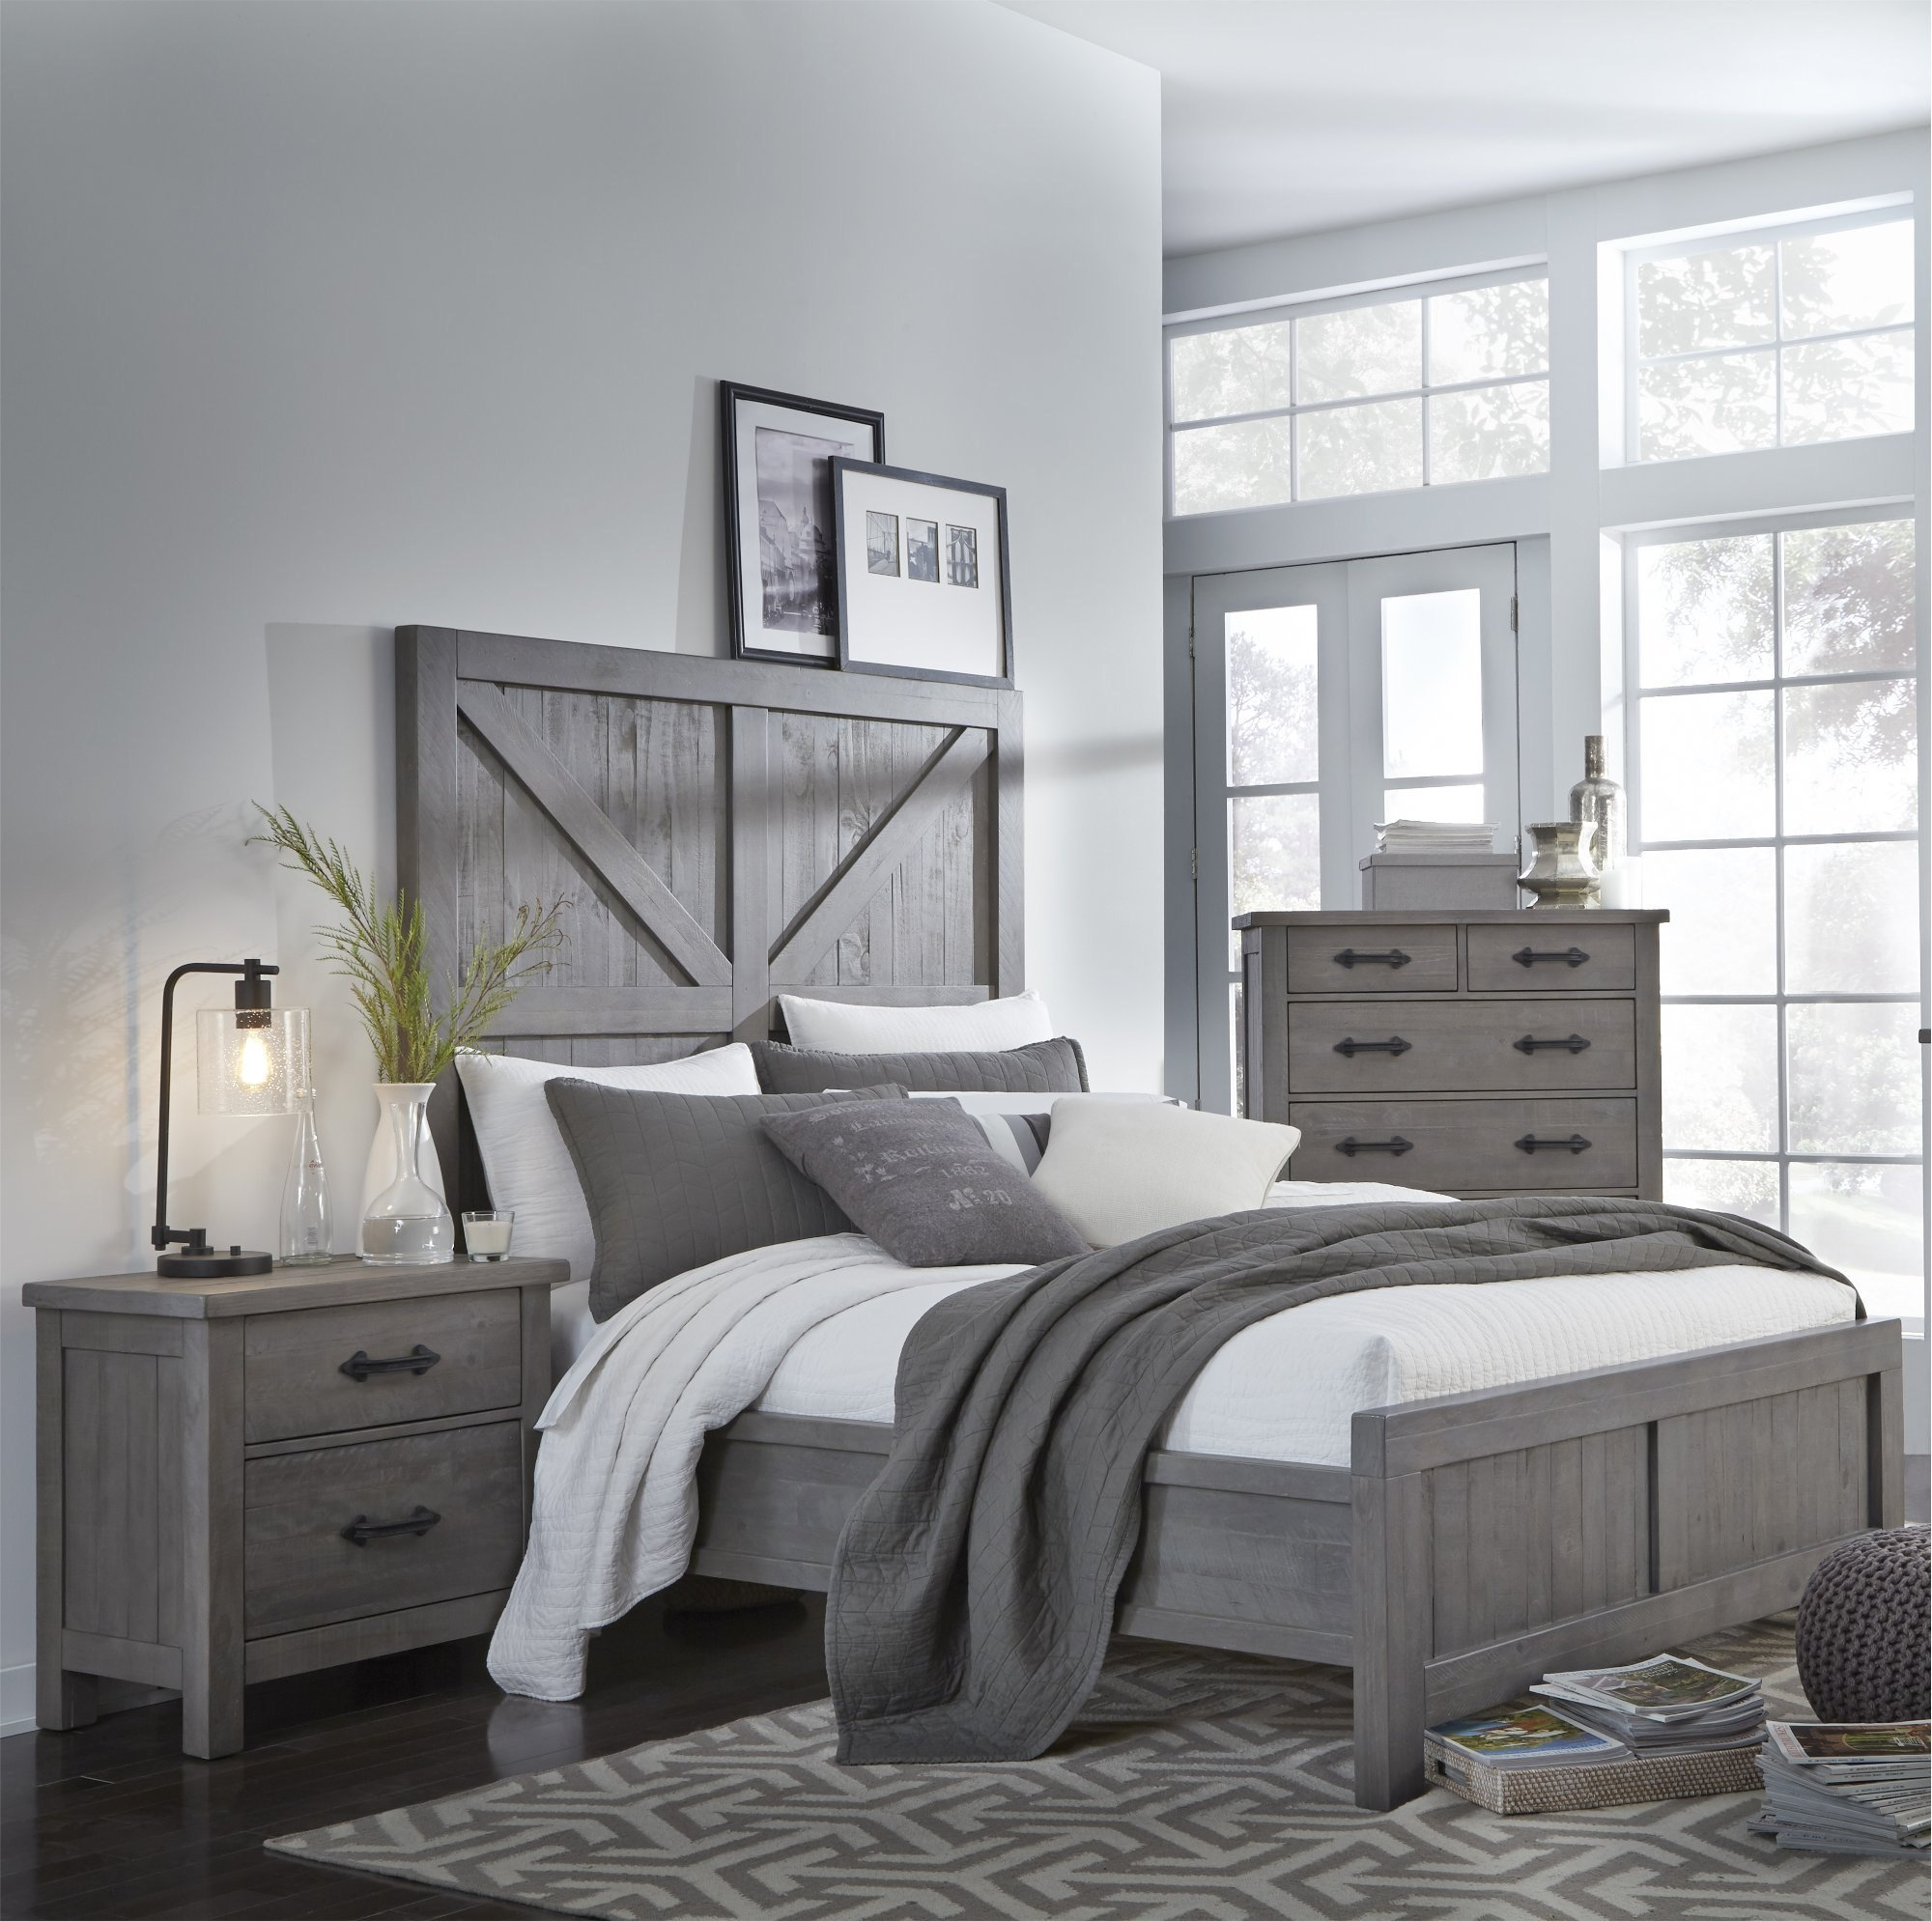 Best Gray Rustic Contemporary 6 Piece King Bedroom Set Austin With Pictures